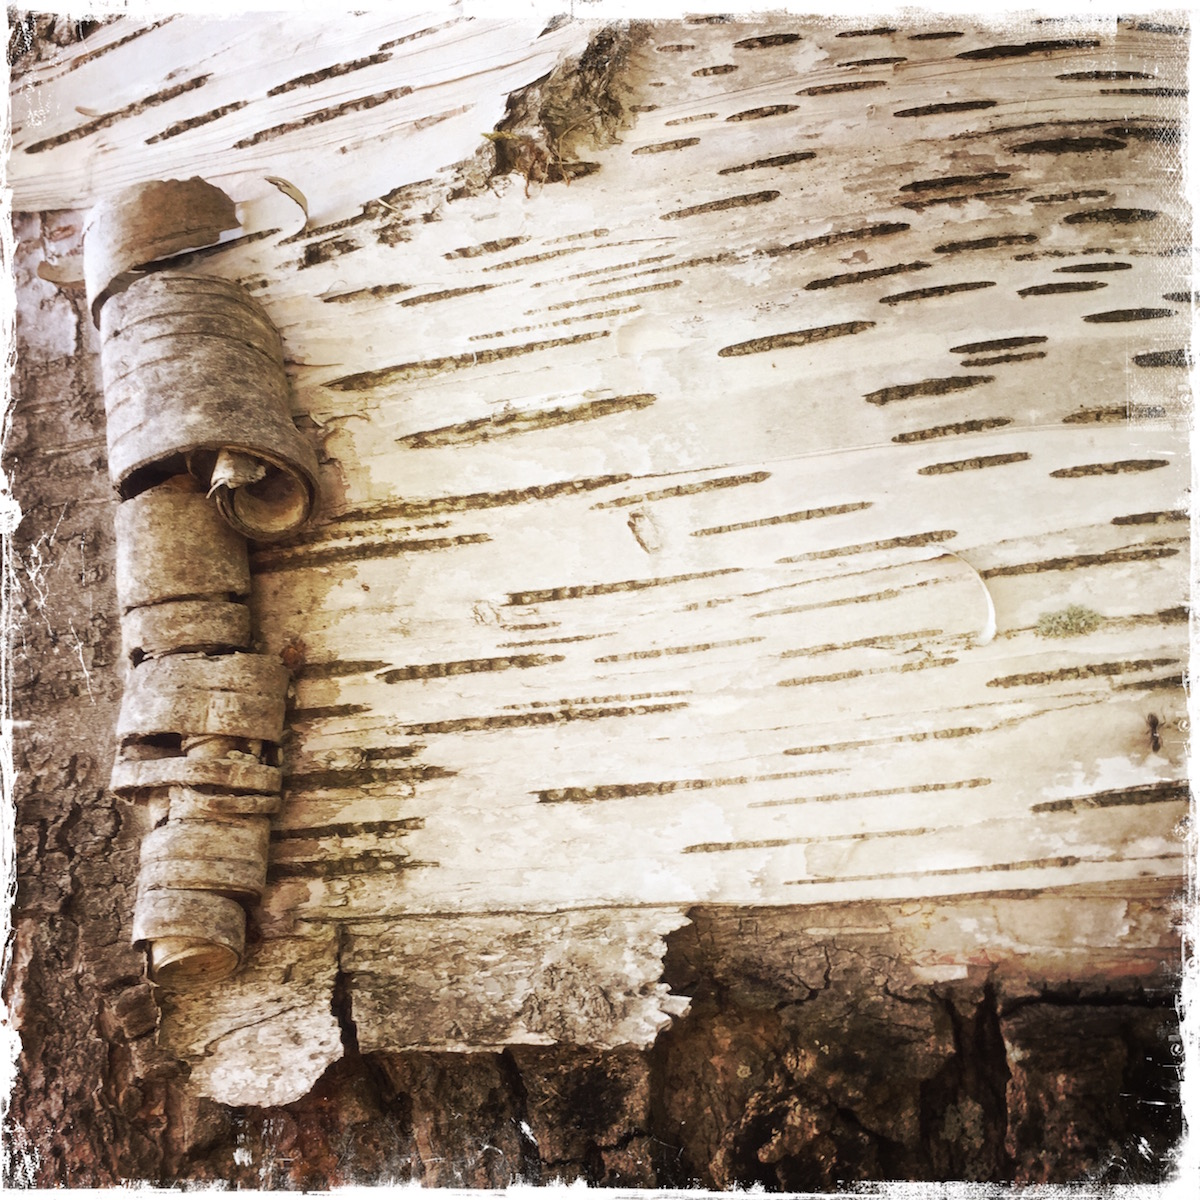 Detail of birch bark. Northern Michigan. Photo by Barbara Sinclair